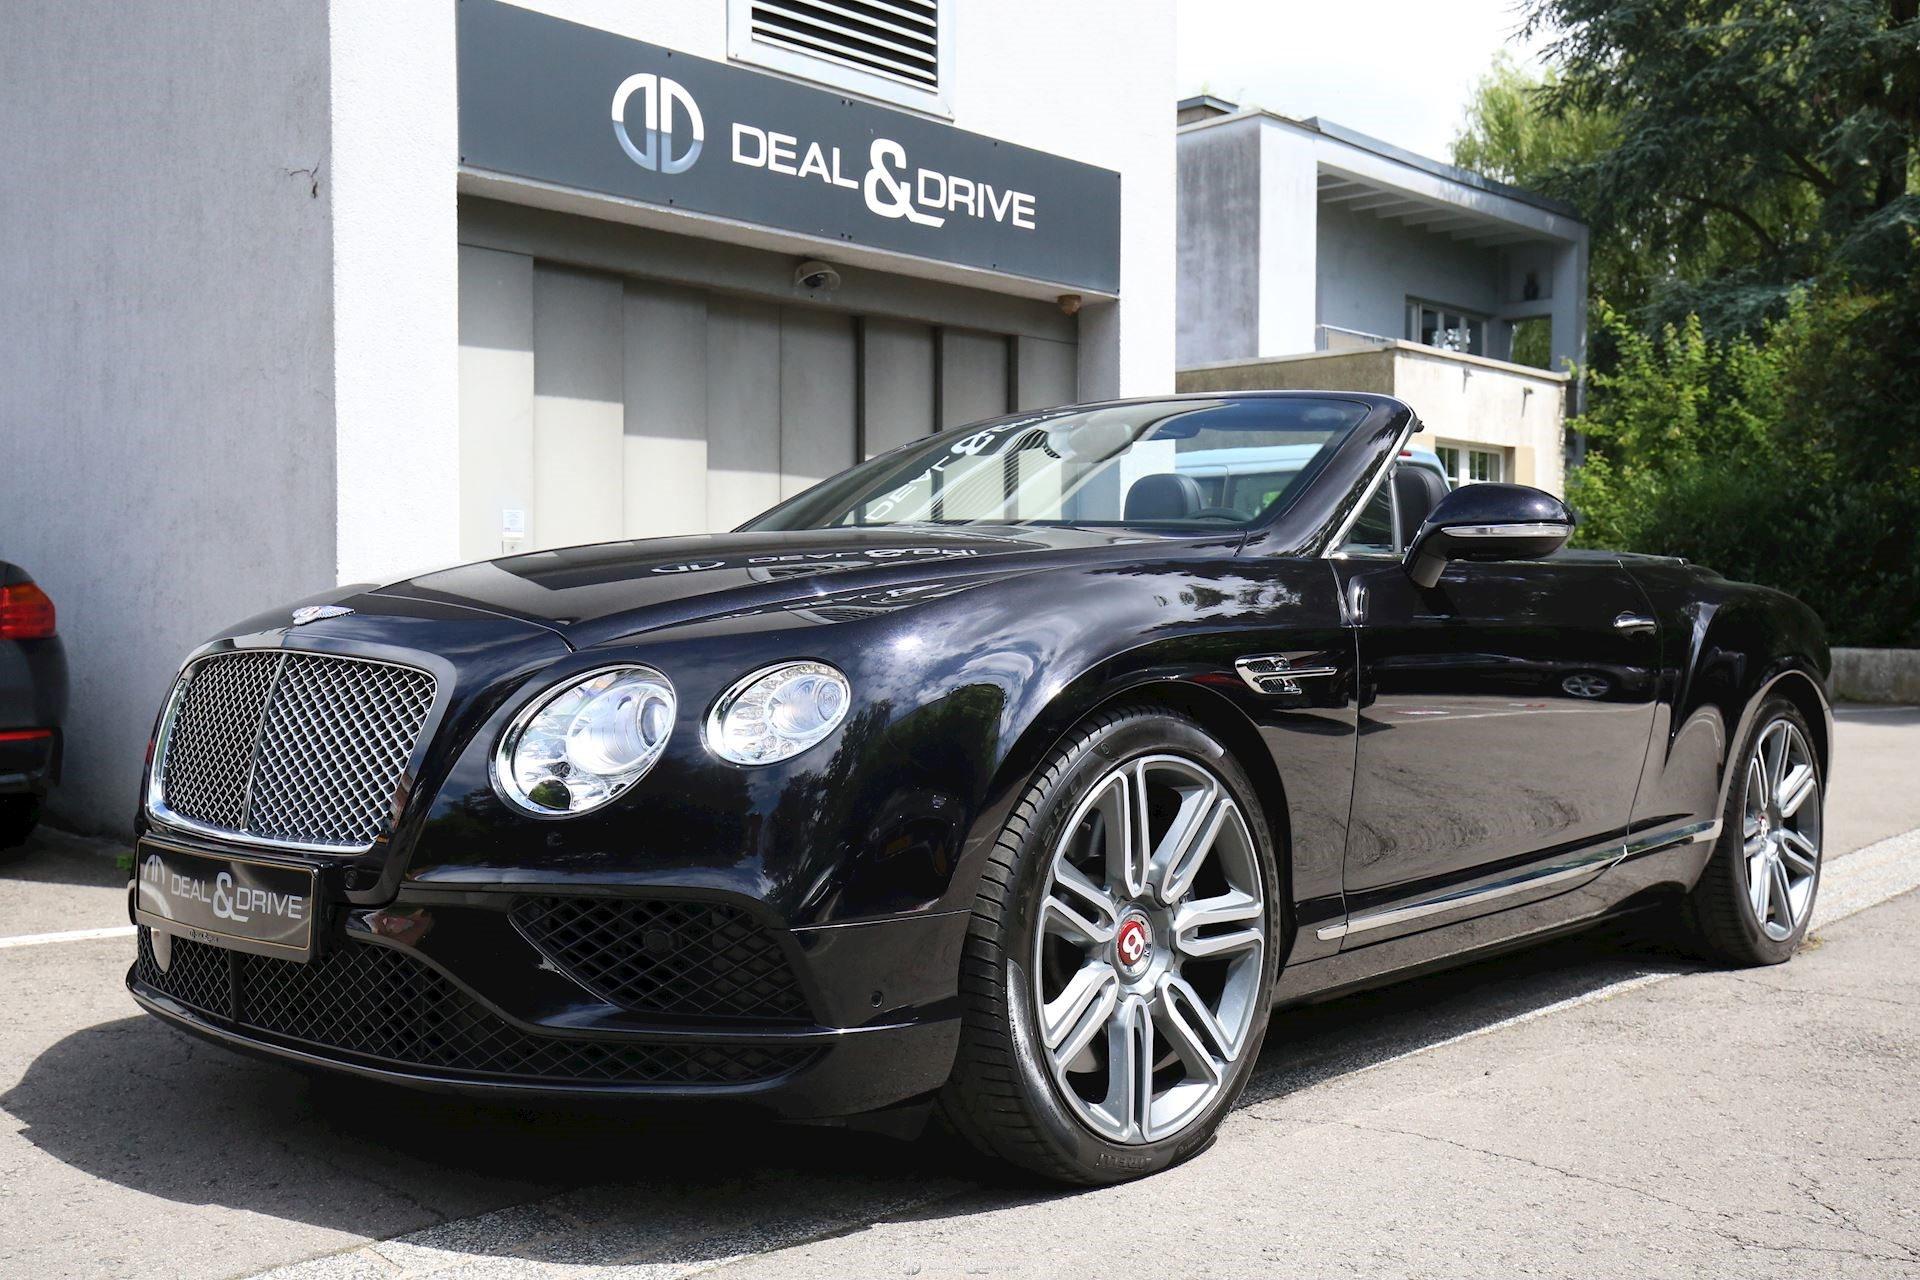 BENTLEY Continental GTC V8 Deal & Drive